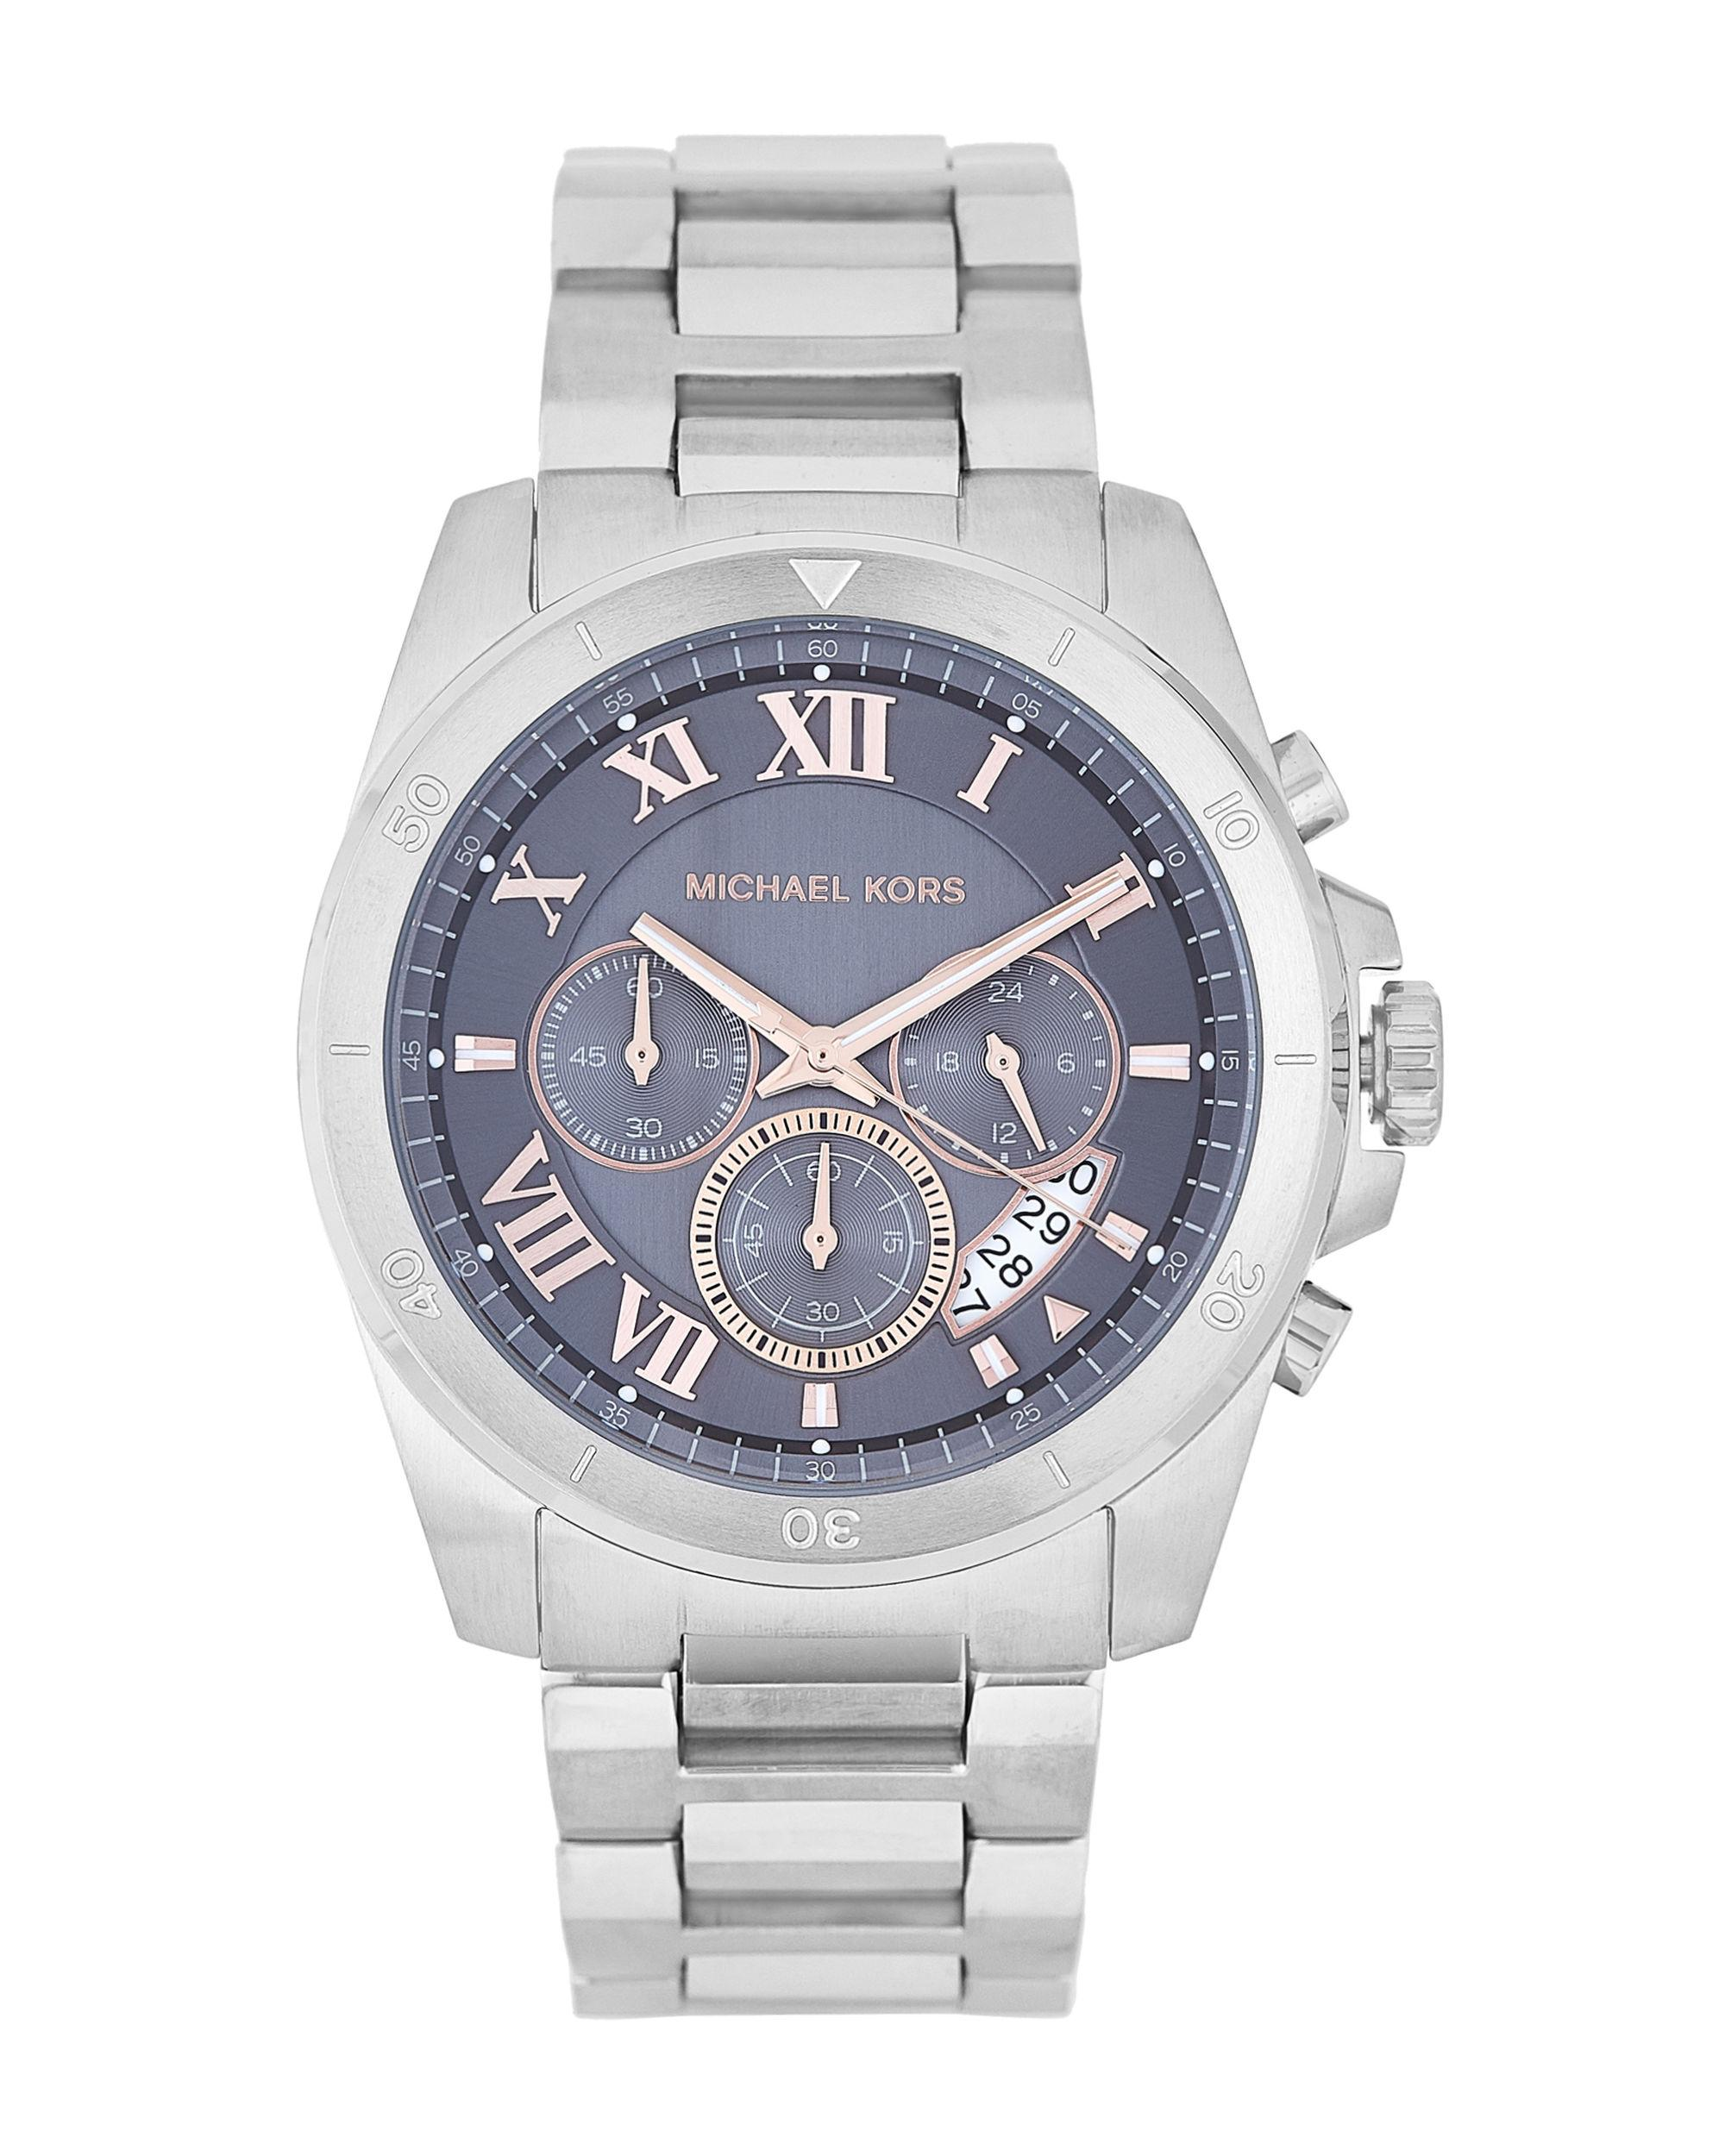 6b553dcb3119 Lyst - Michael Kors Mk8609 Grey   Silver-tone Brecken Watch in ...